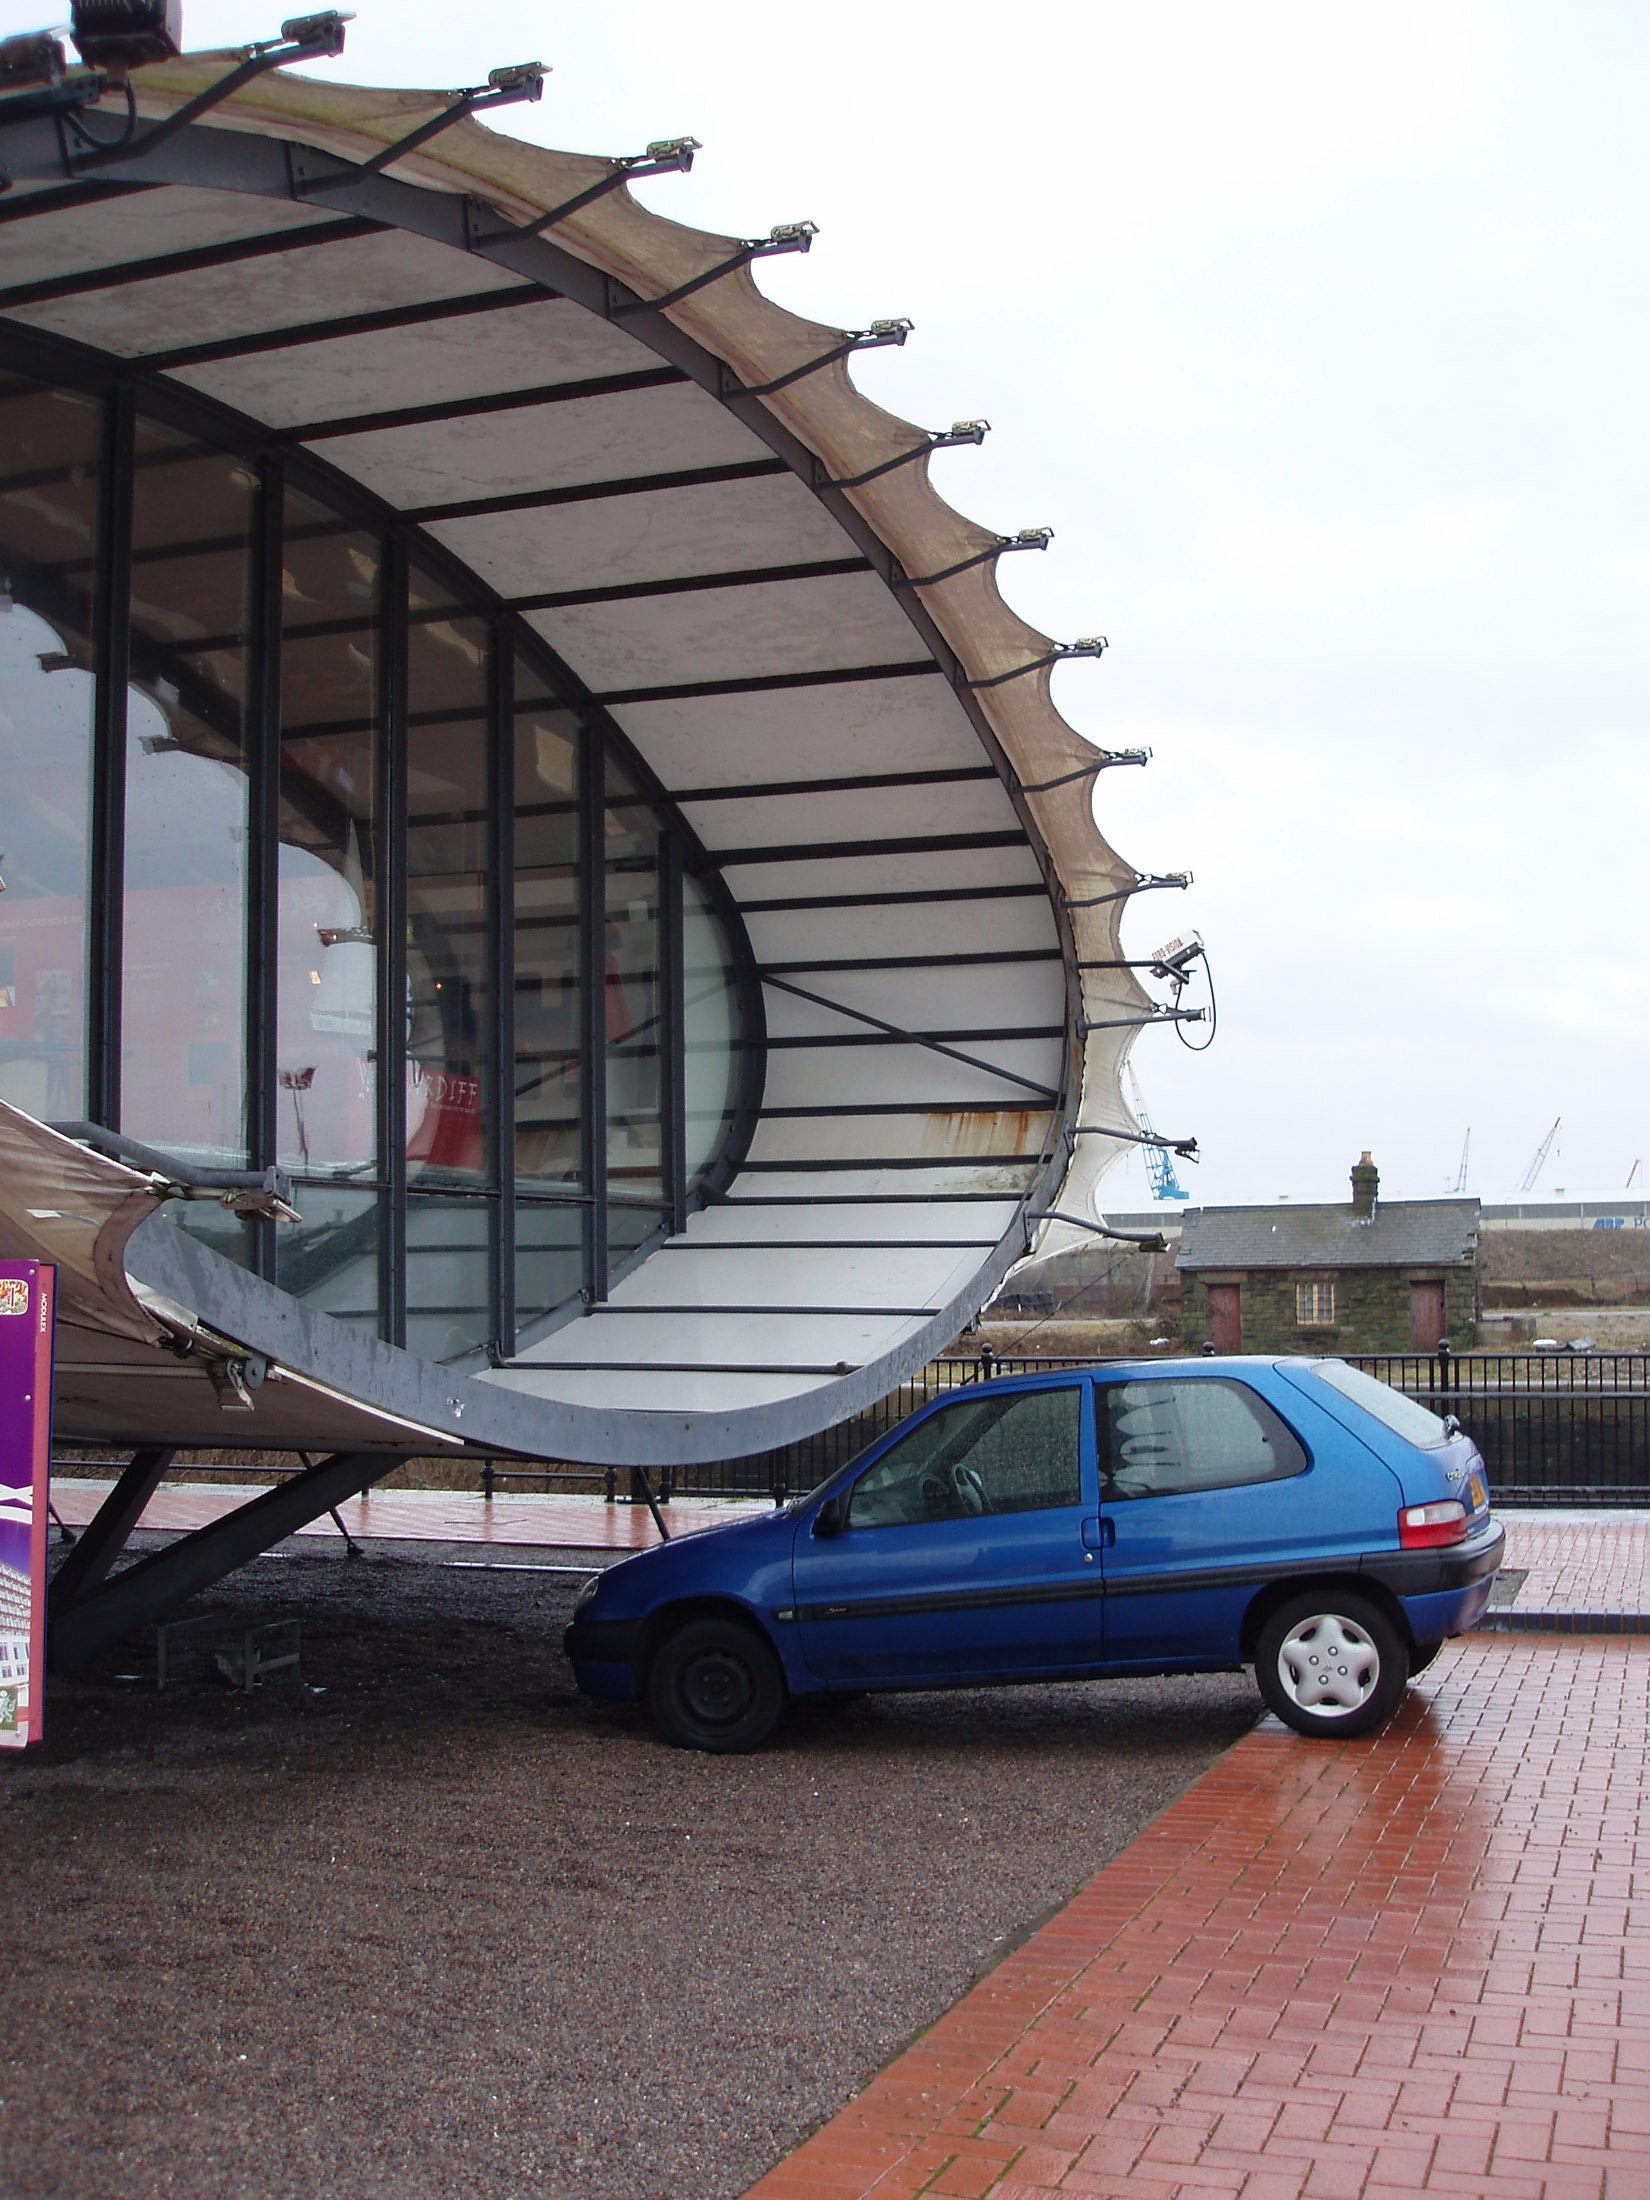 Blue Small Car at Famous Architectural Cardiff Bay Visitor Centre Tube at Cardiff Bay, Wales.